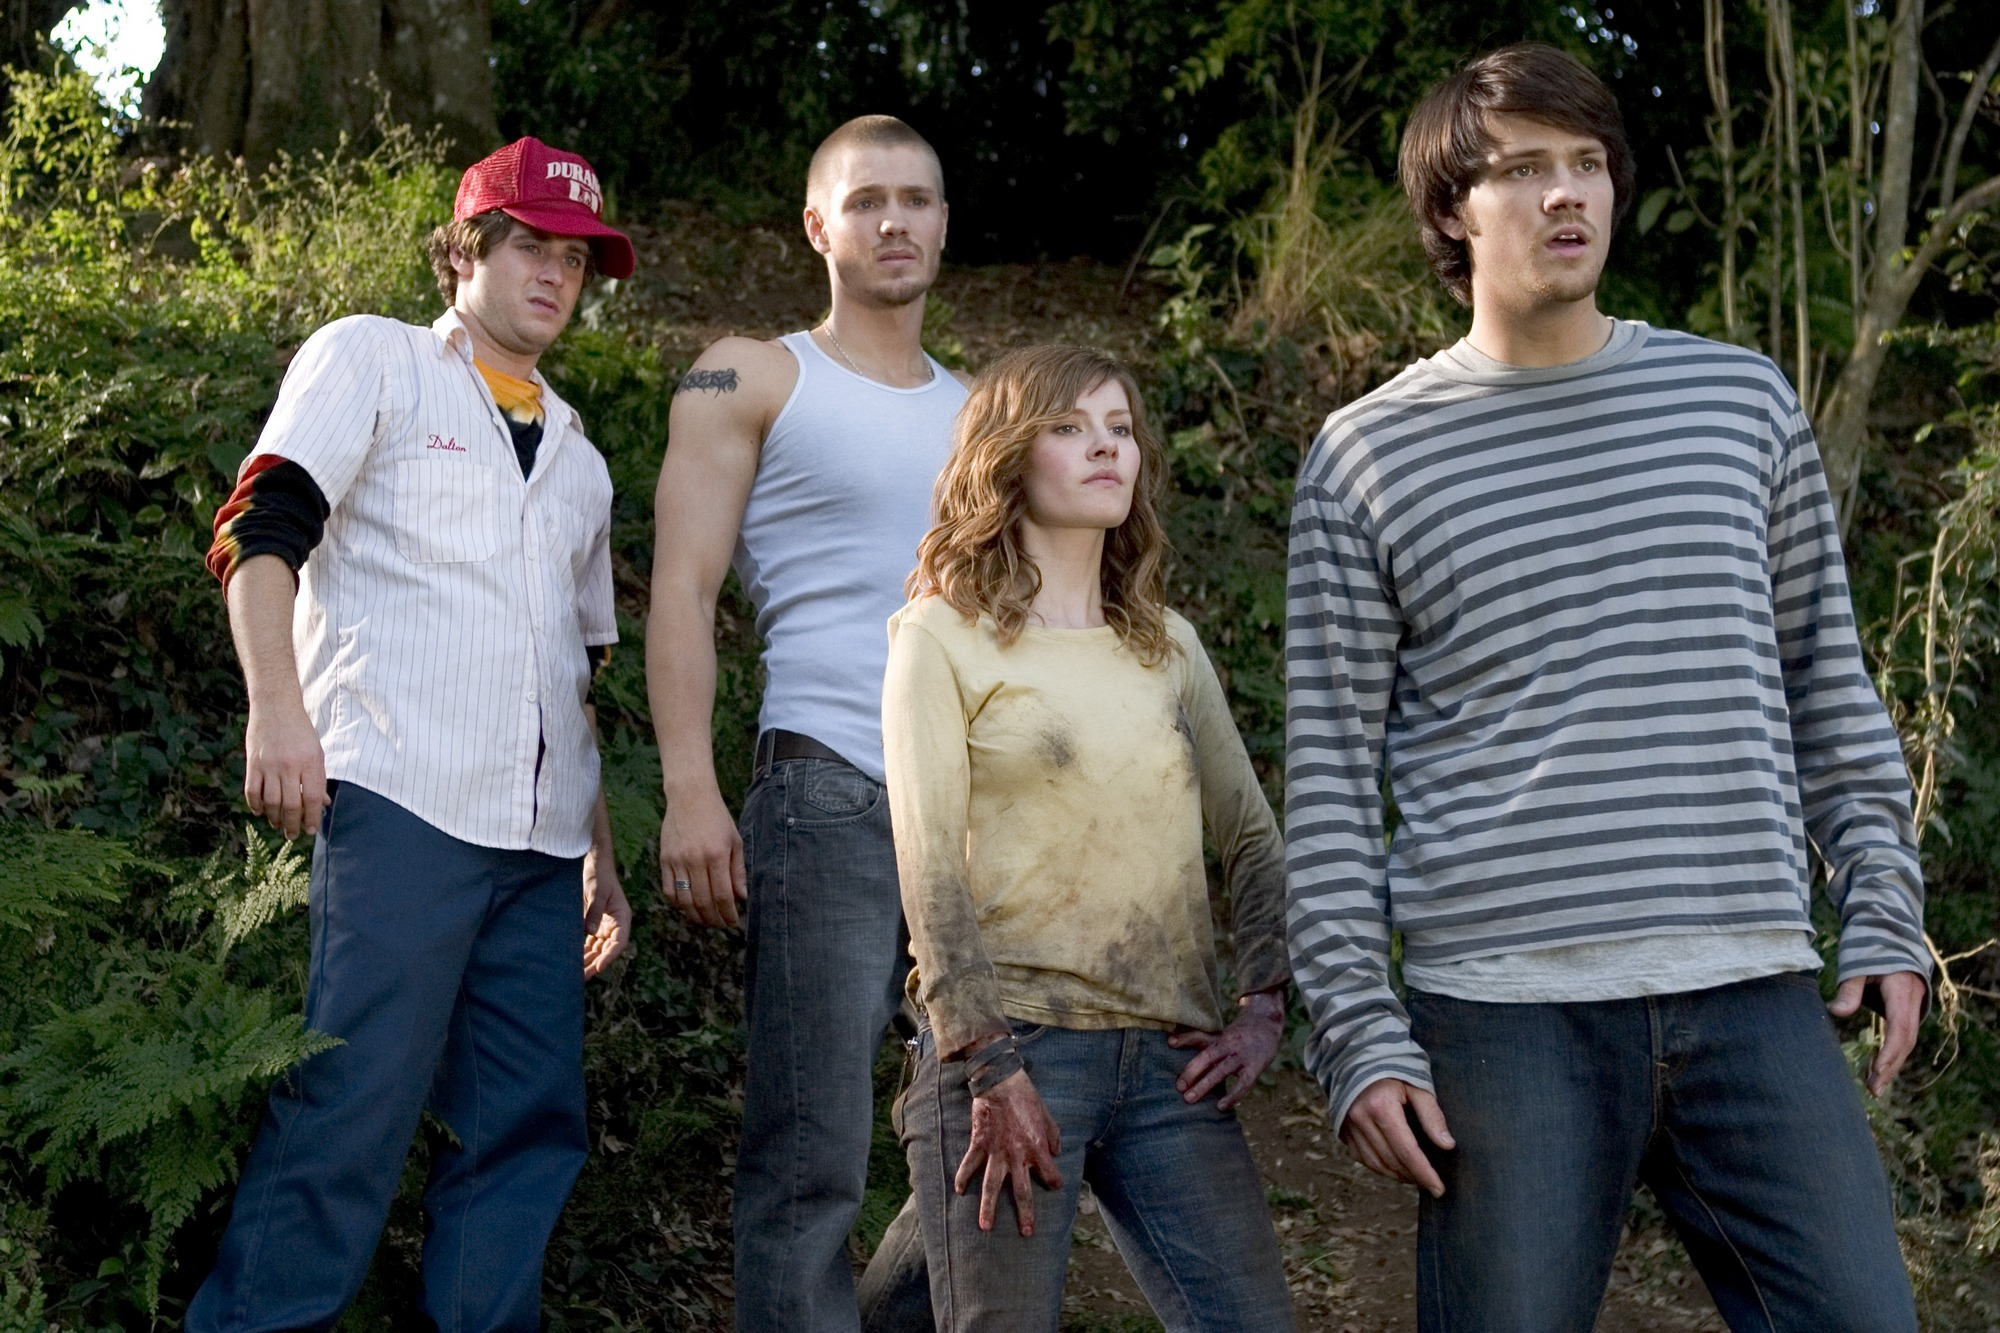 Jon Abrahams, Chad Michael Murray, Elisha Cuthbert and Jared Padalecki in House of Wax (2005)